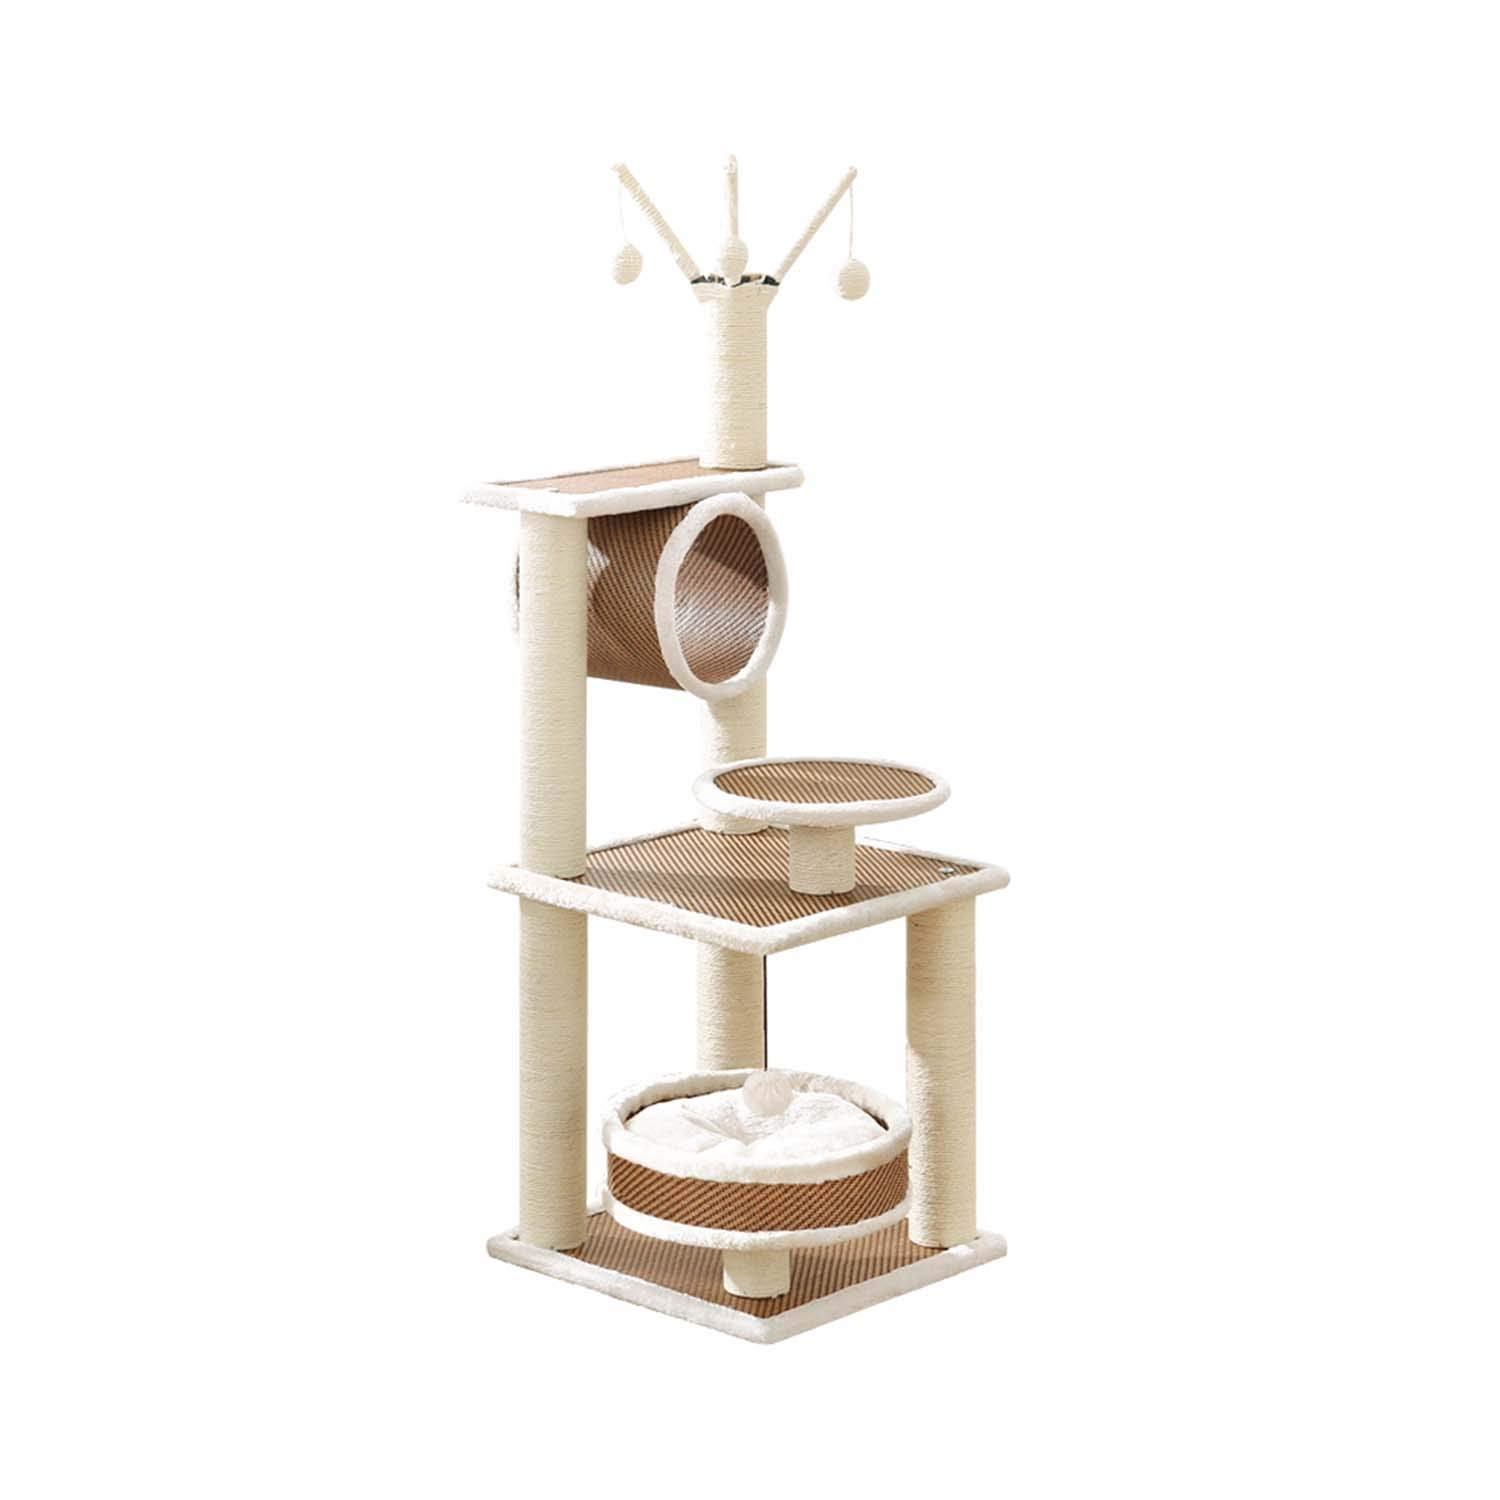 41cm41cm120cm-B Siler Cat Tree, Sisal Cat Climbing Frame with Cat Basket and Pipeline Activity Center Cat Scratch Board SL-031 (Size   41cm41cm120cm-B)